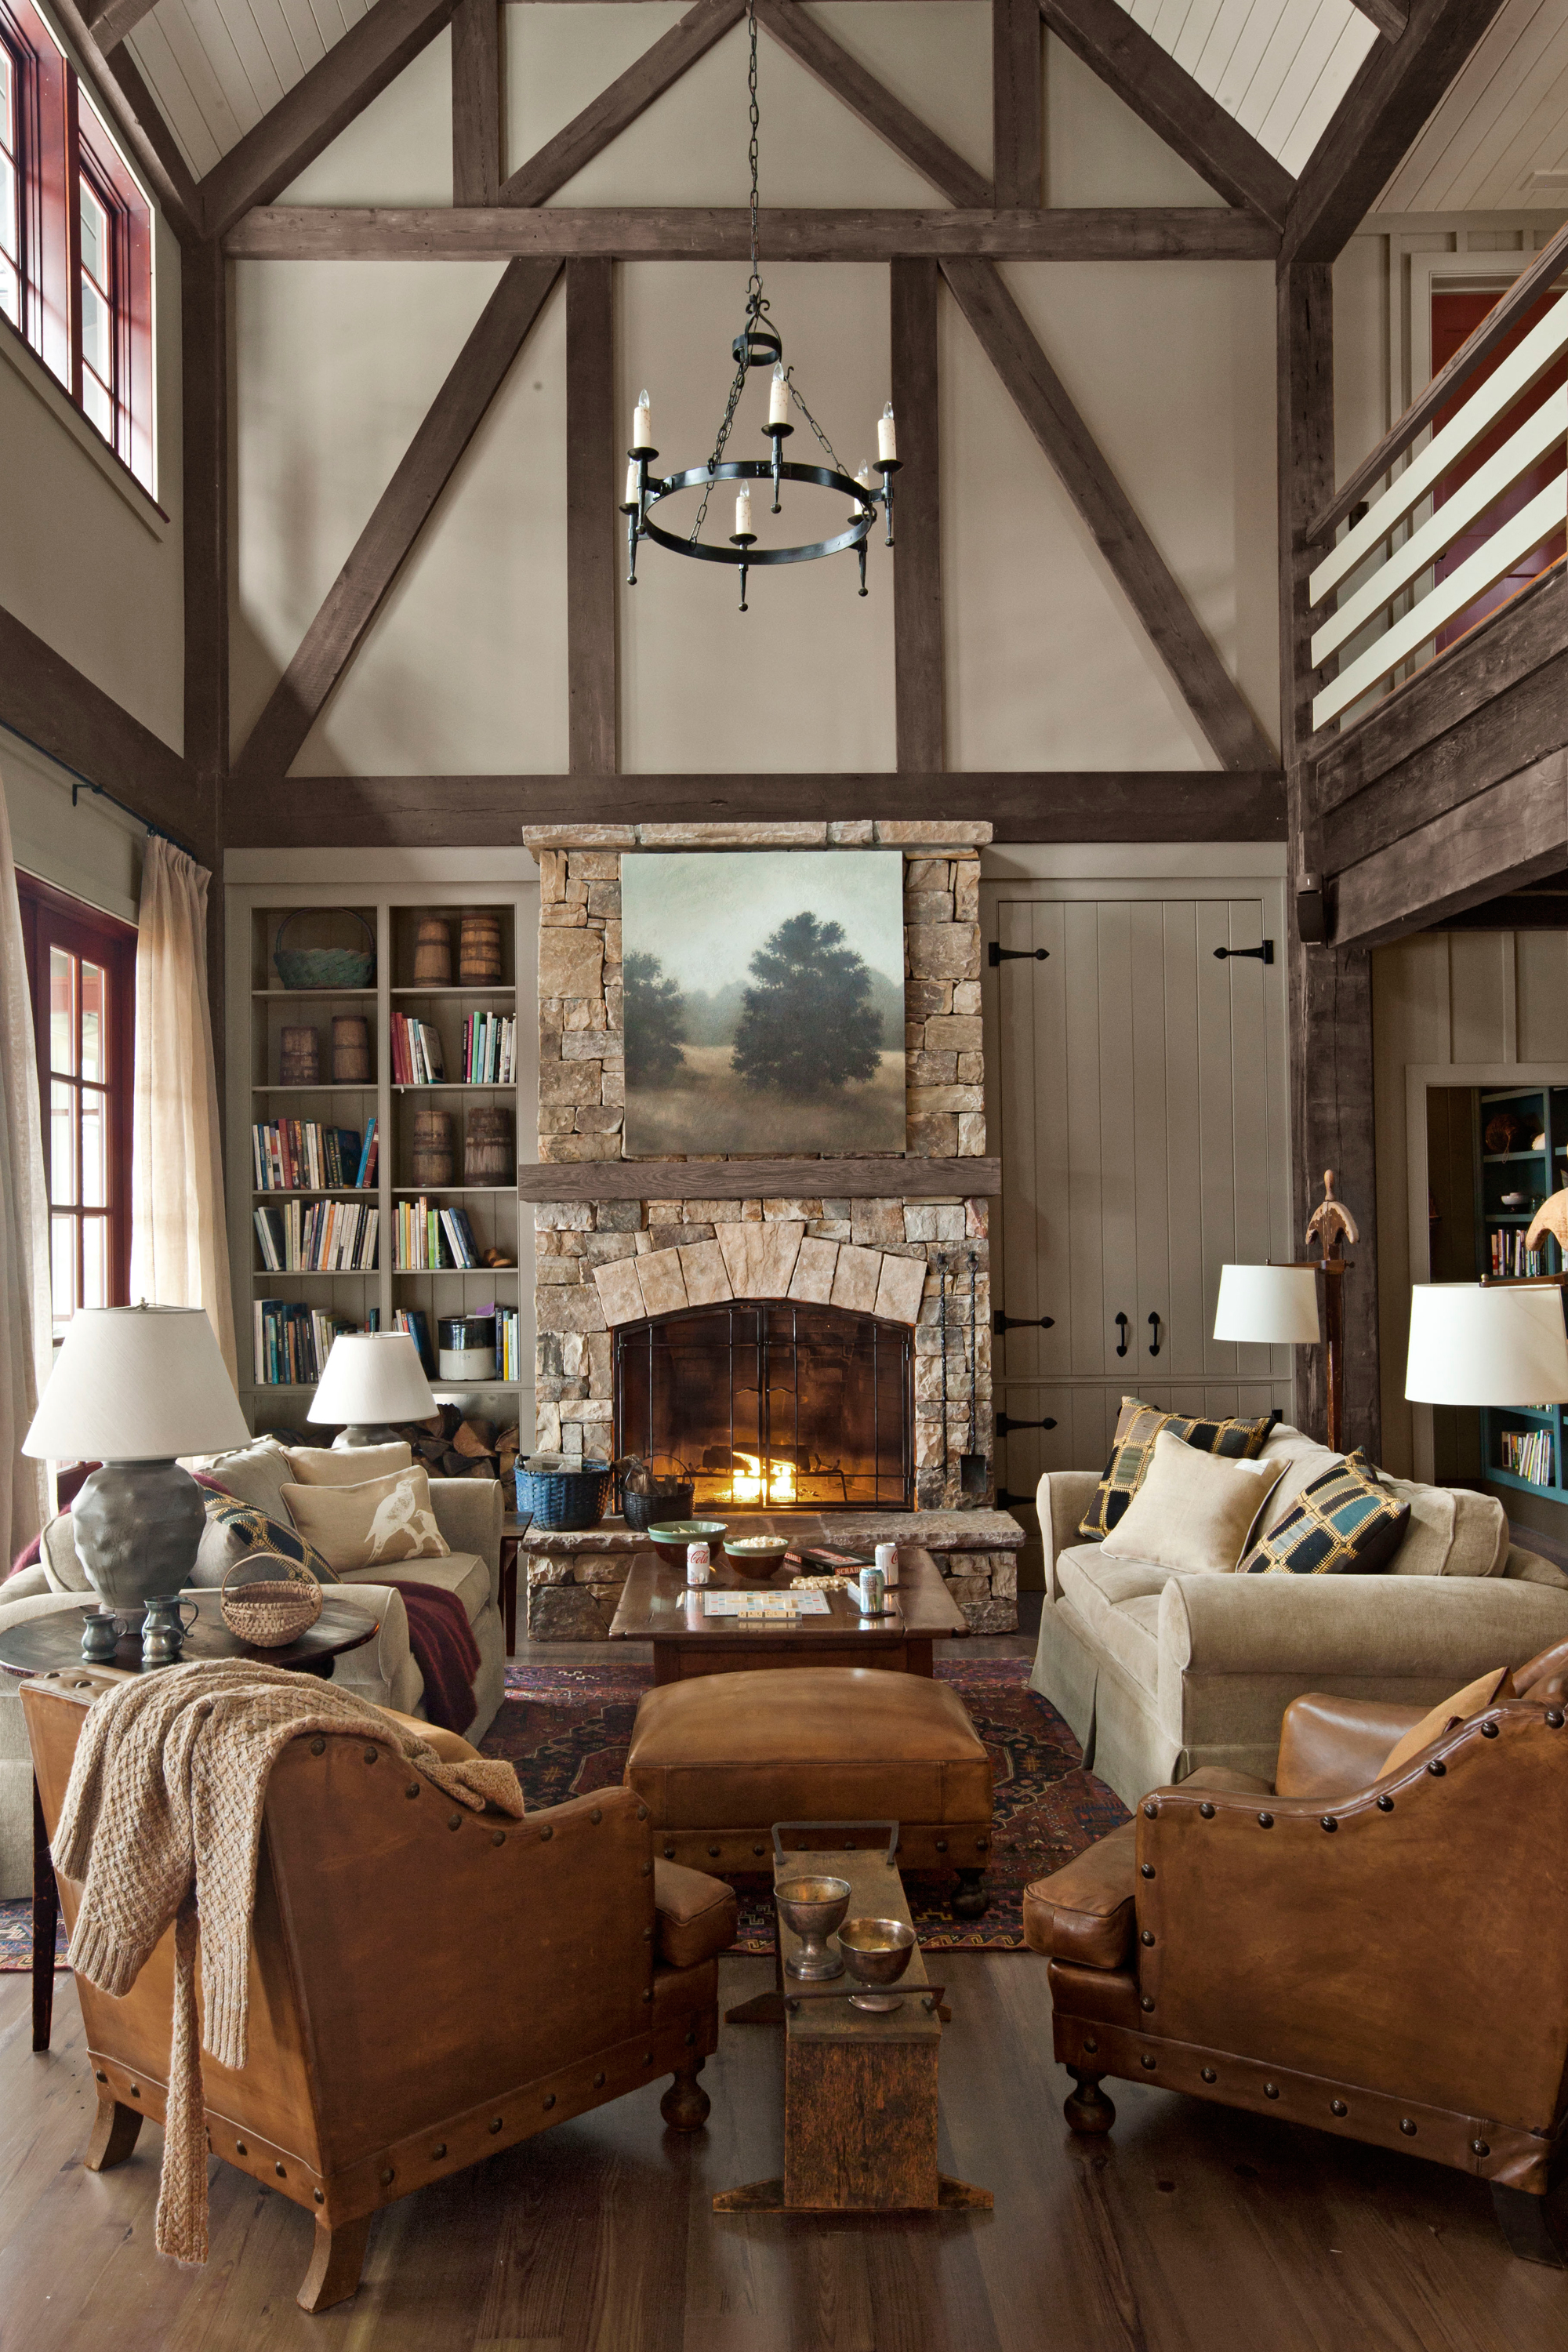 30 cozy living rooms youll want to hibernate in all winter long ...